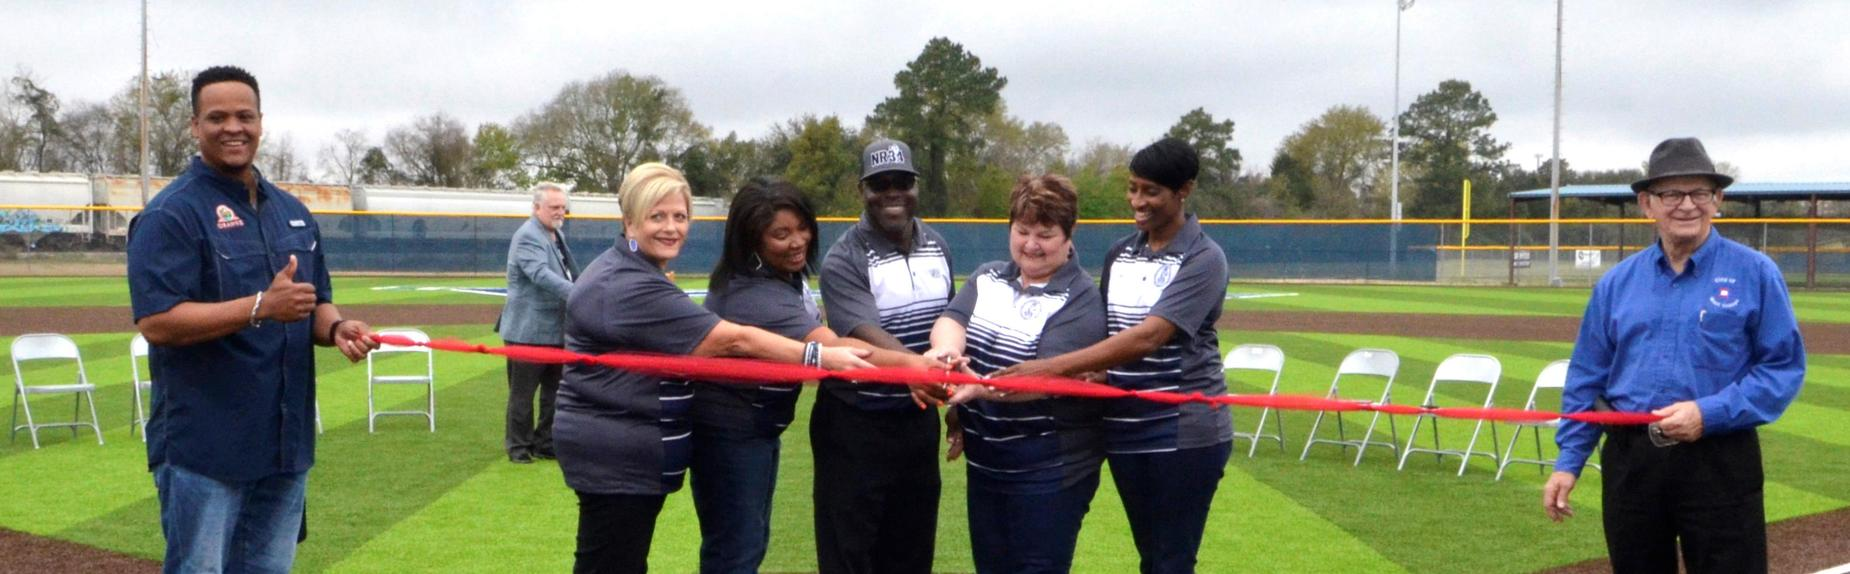 Ribbon Cutting WOS-HS Baseball field